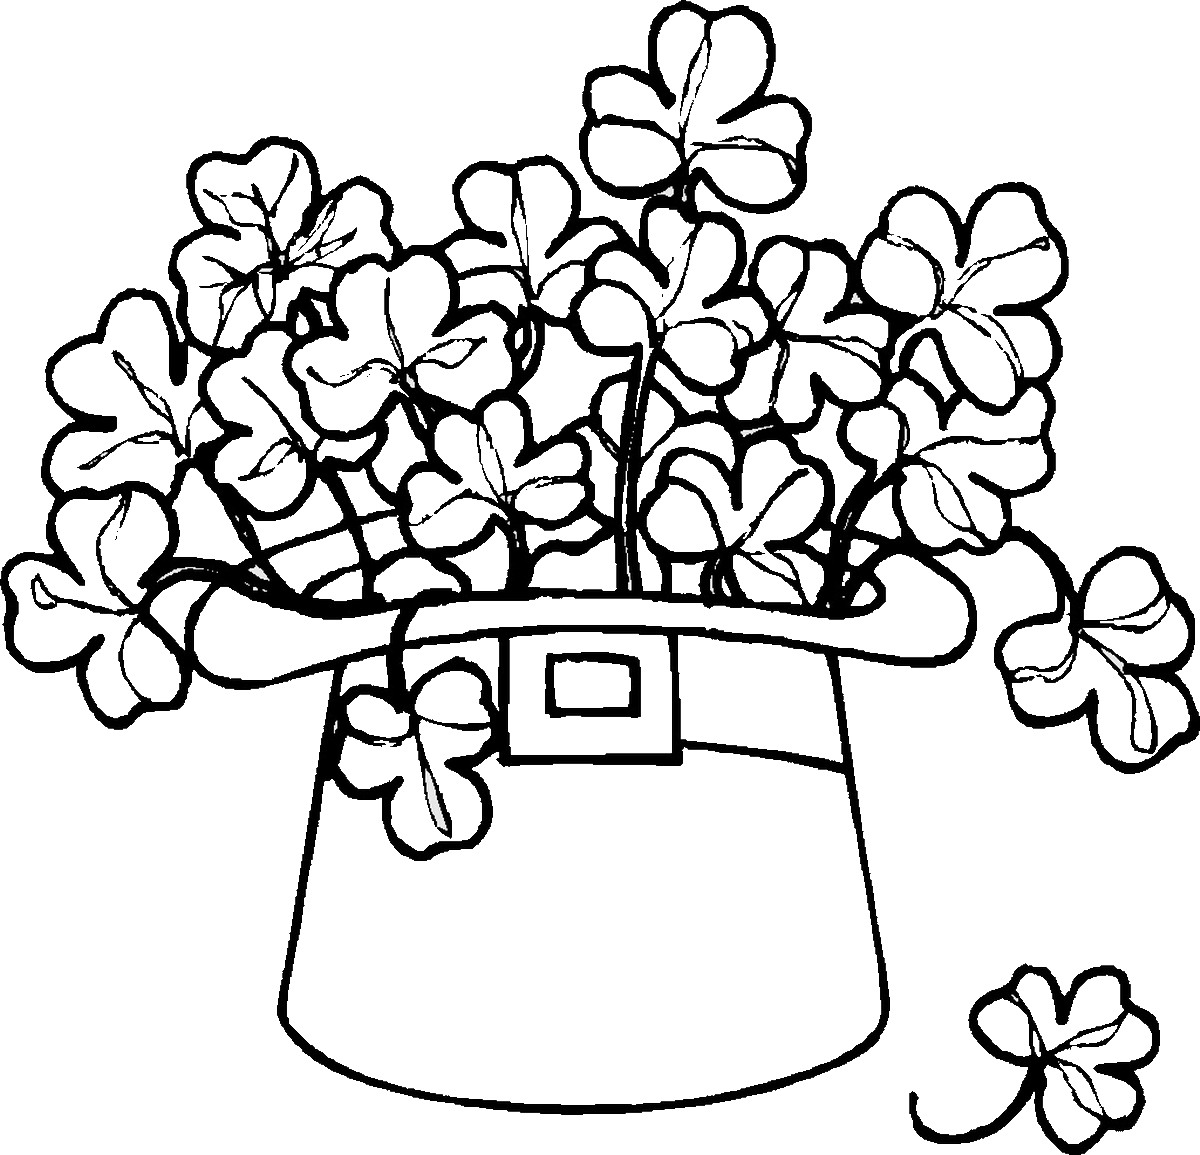 Free St. Patrick's Day Coloring Pages.